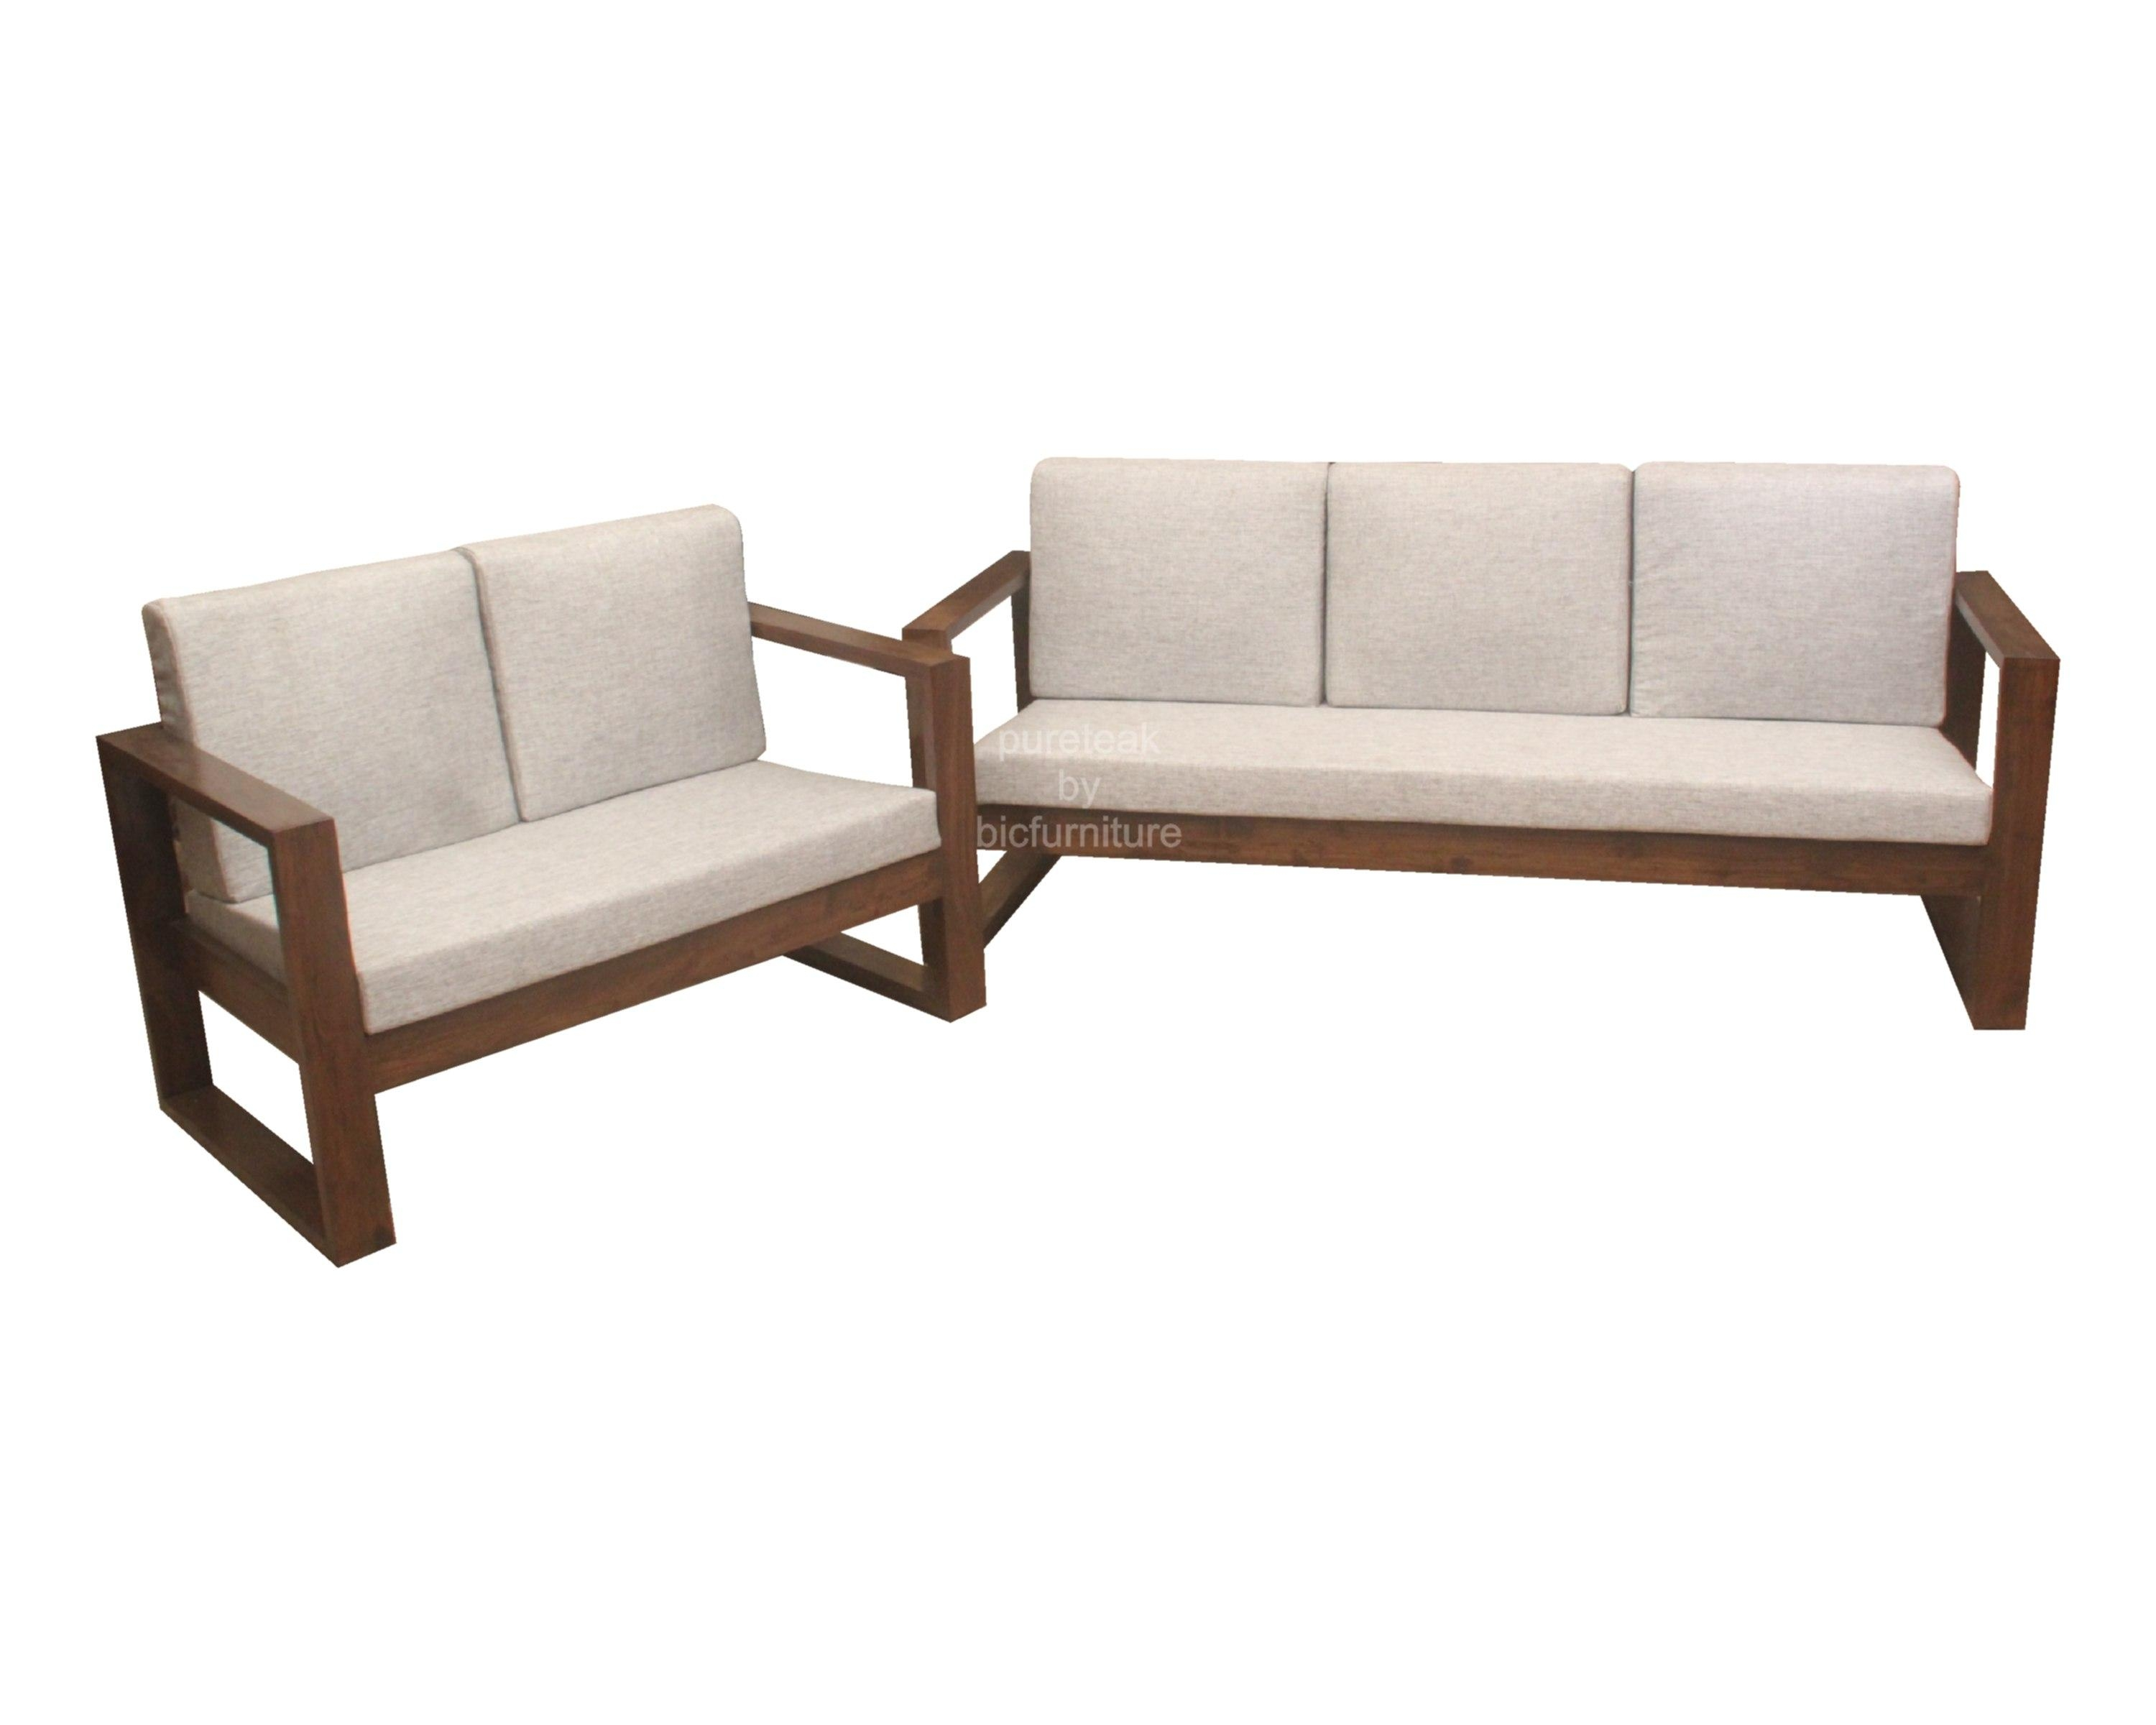 Wooden Sofa Set In Simple Design (Ws 67) Details | Bic Furniture With Simple Sofas (Photo 8 of 20)